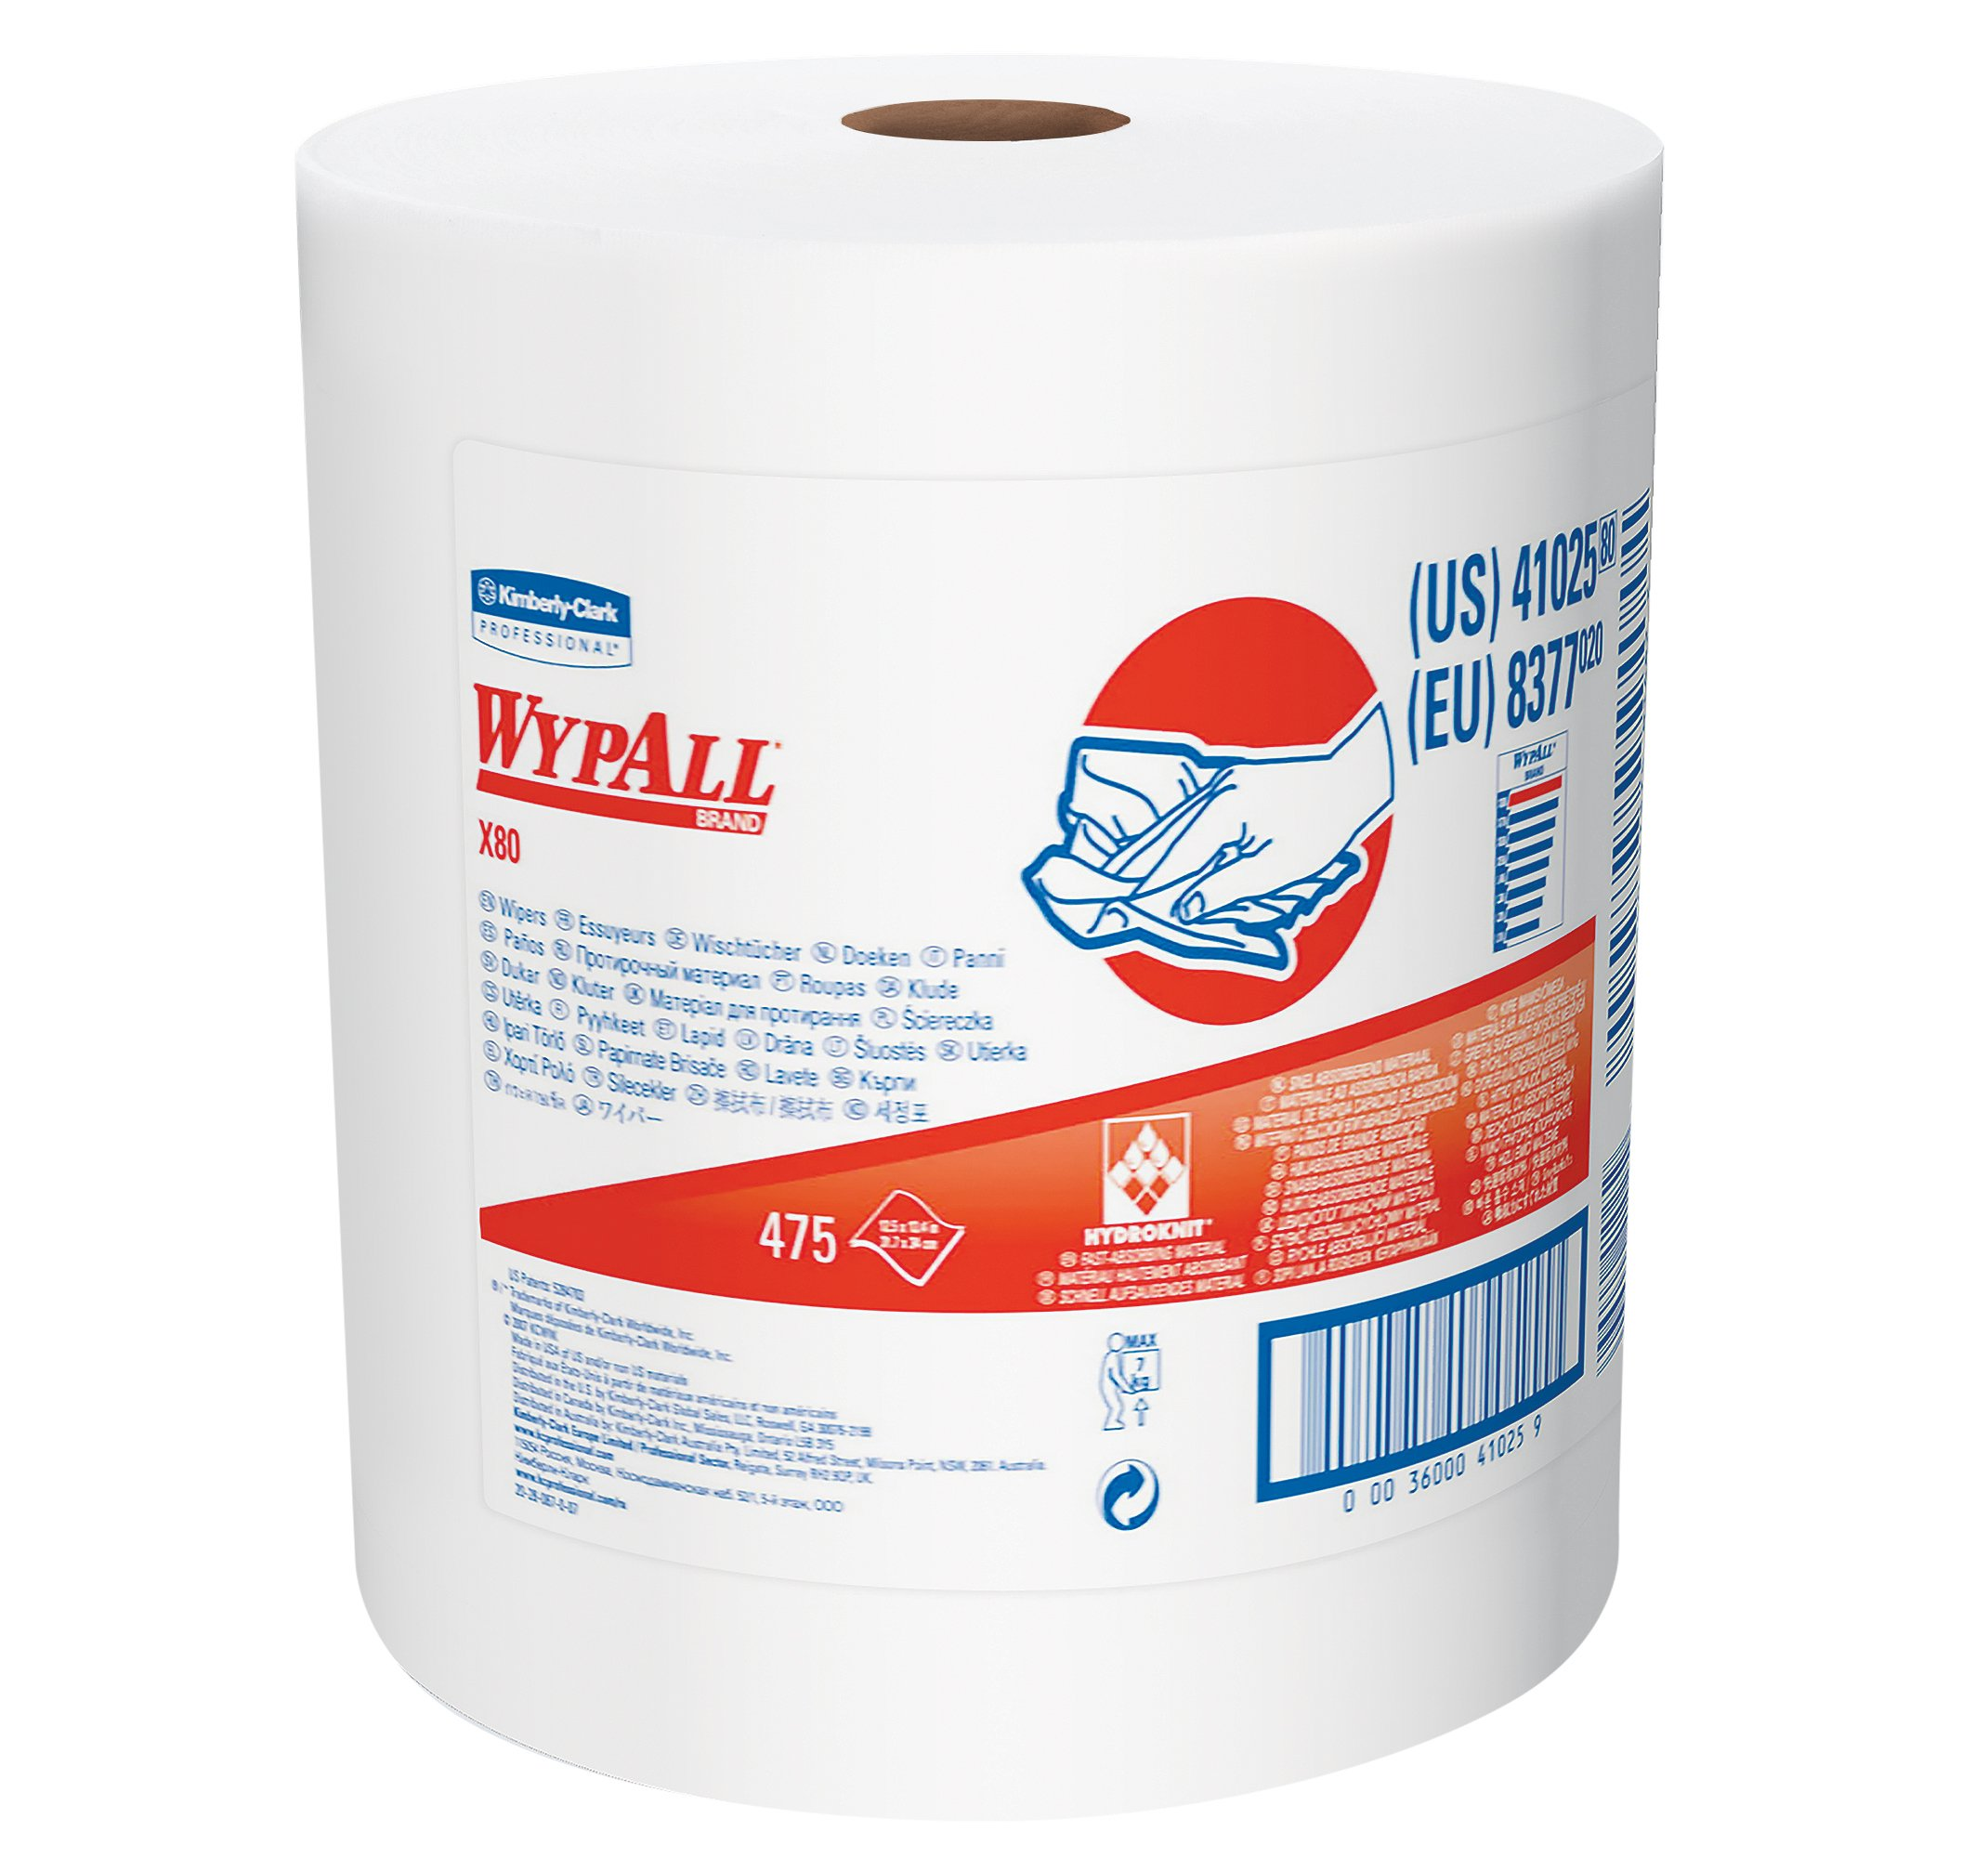 Wypall X80 Reusable Wipes (41025), Extended Use Cloths Jumbo Roll, White, 475 Sheets / Roll; 1 Roll / Case by Wypall